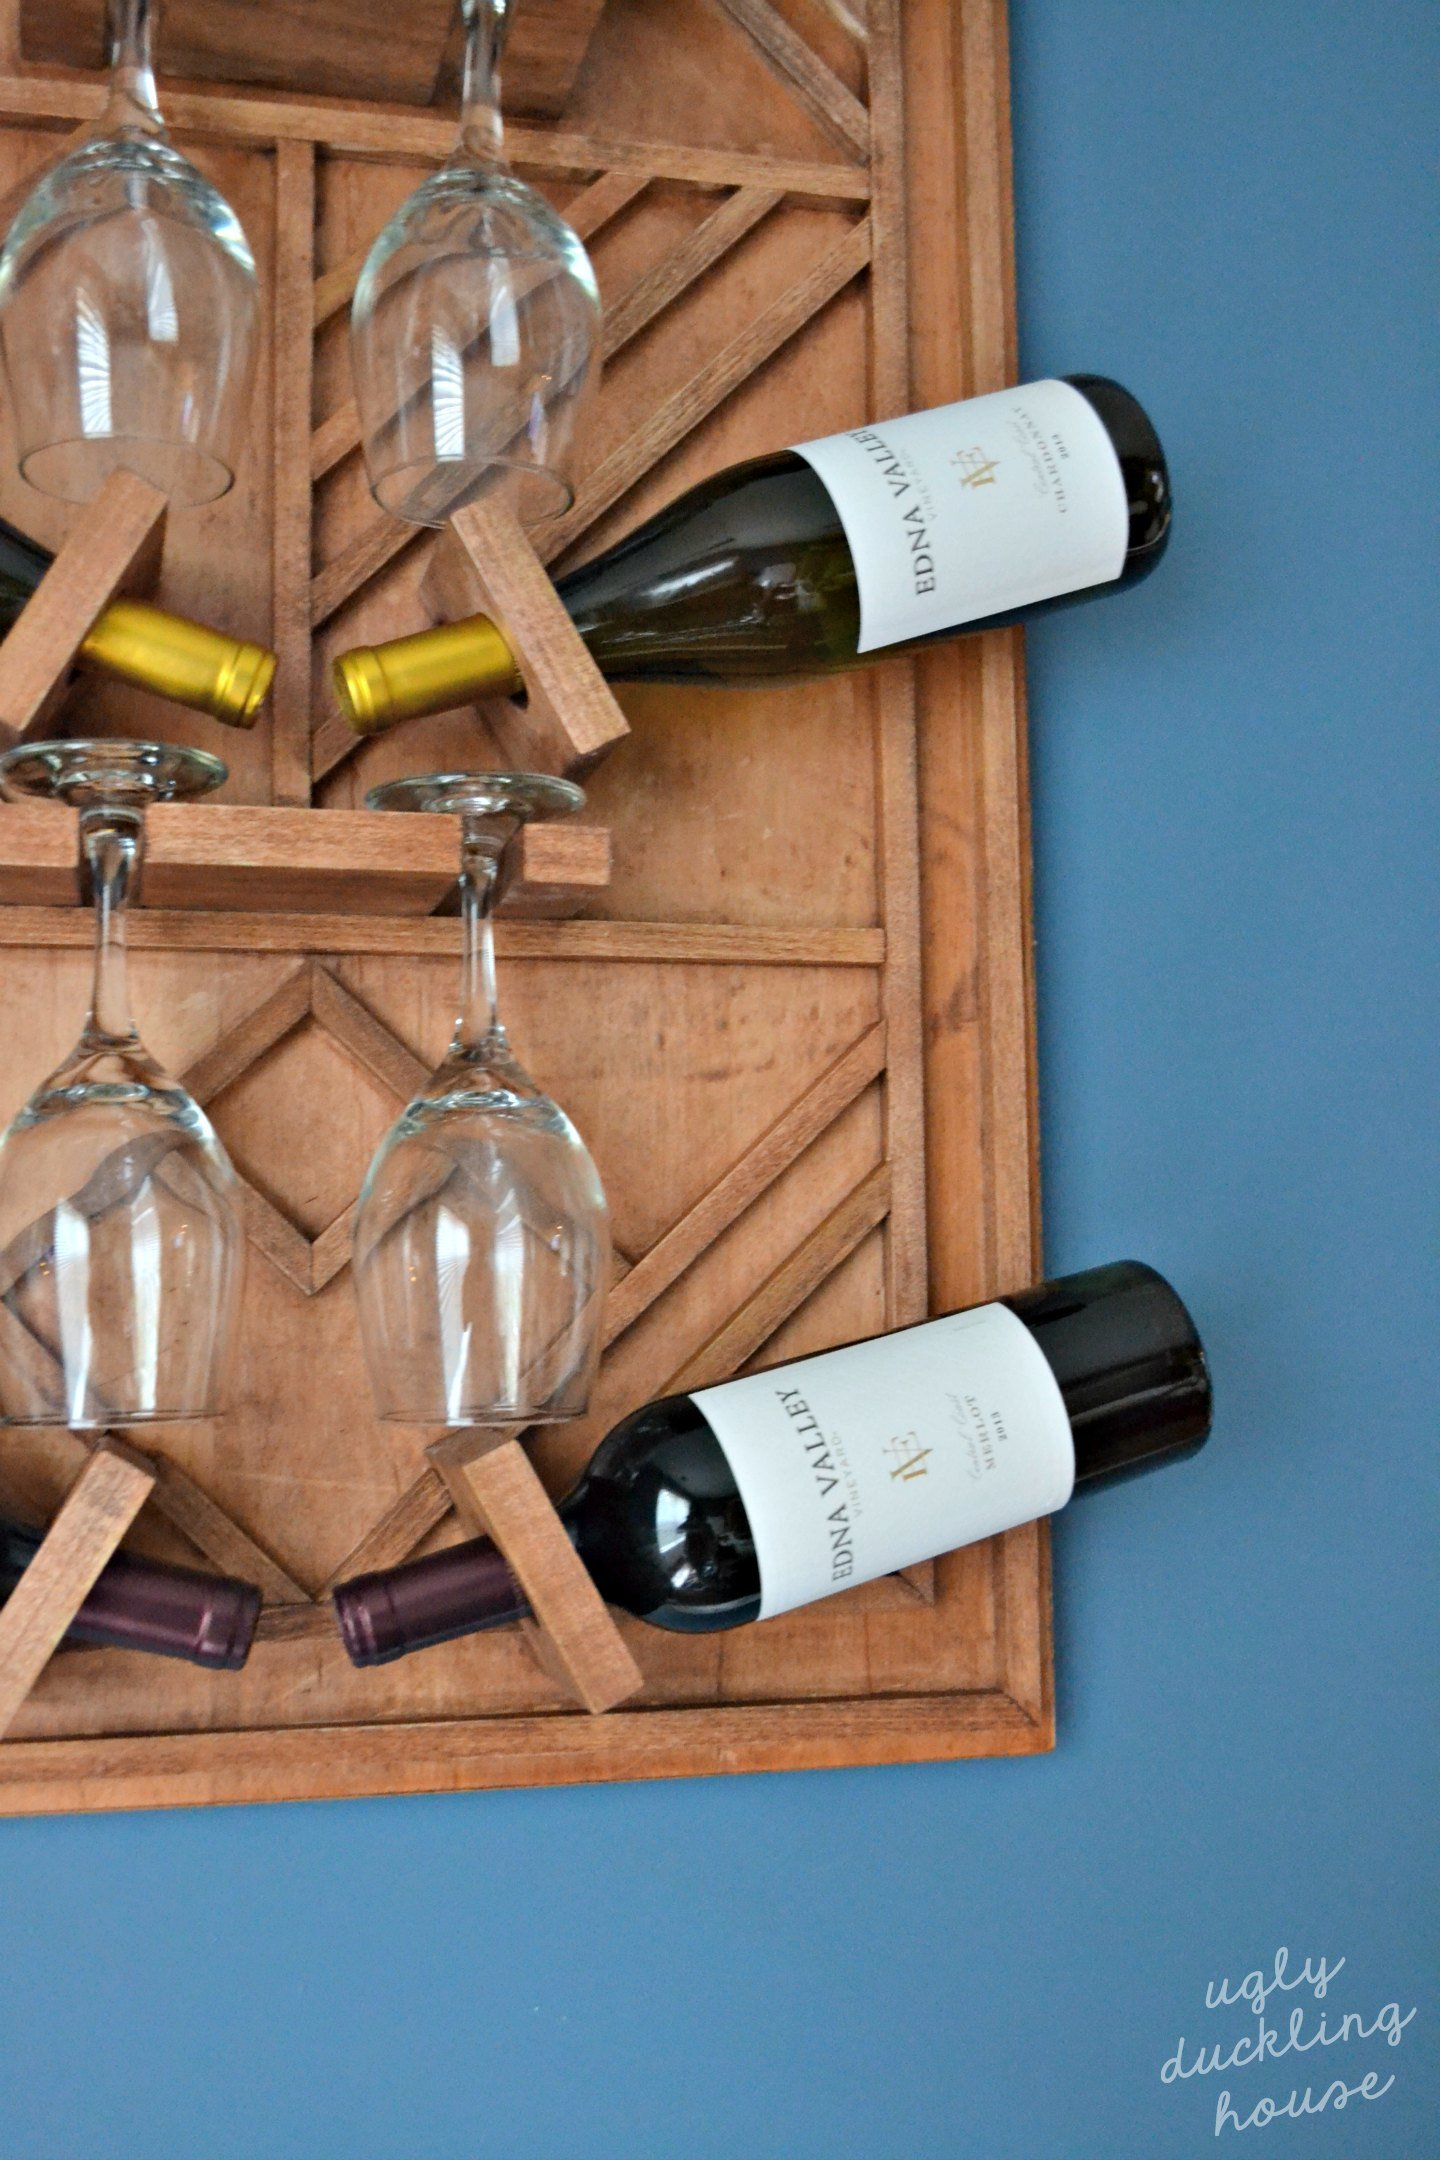 loaded wine rack with Edna Valley Vineyard and wine glasses